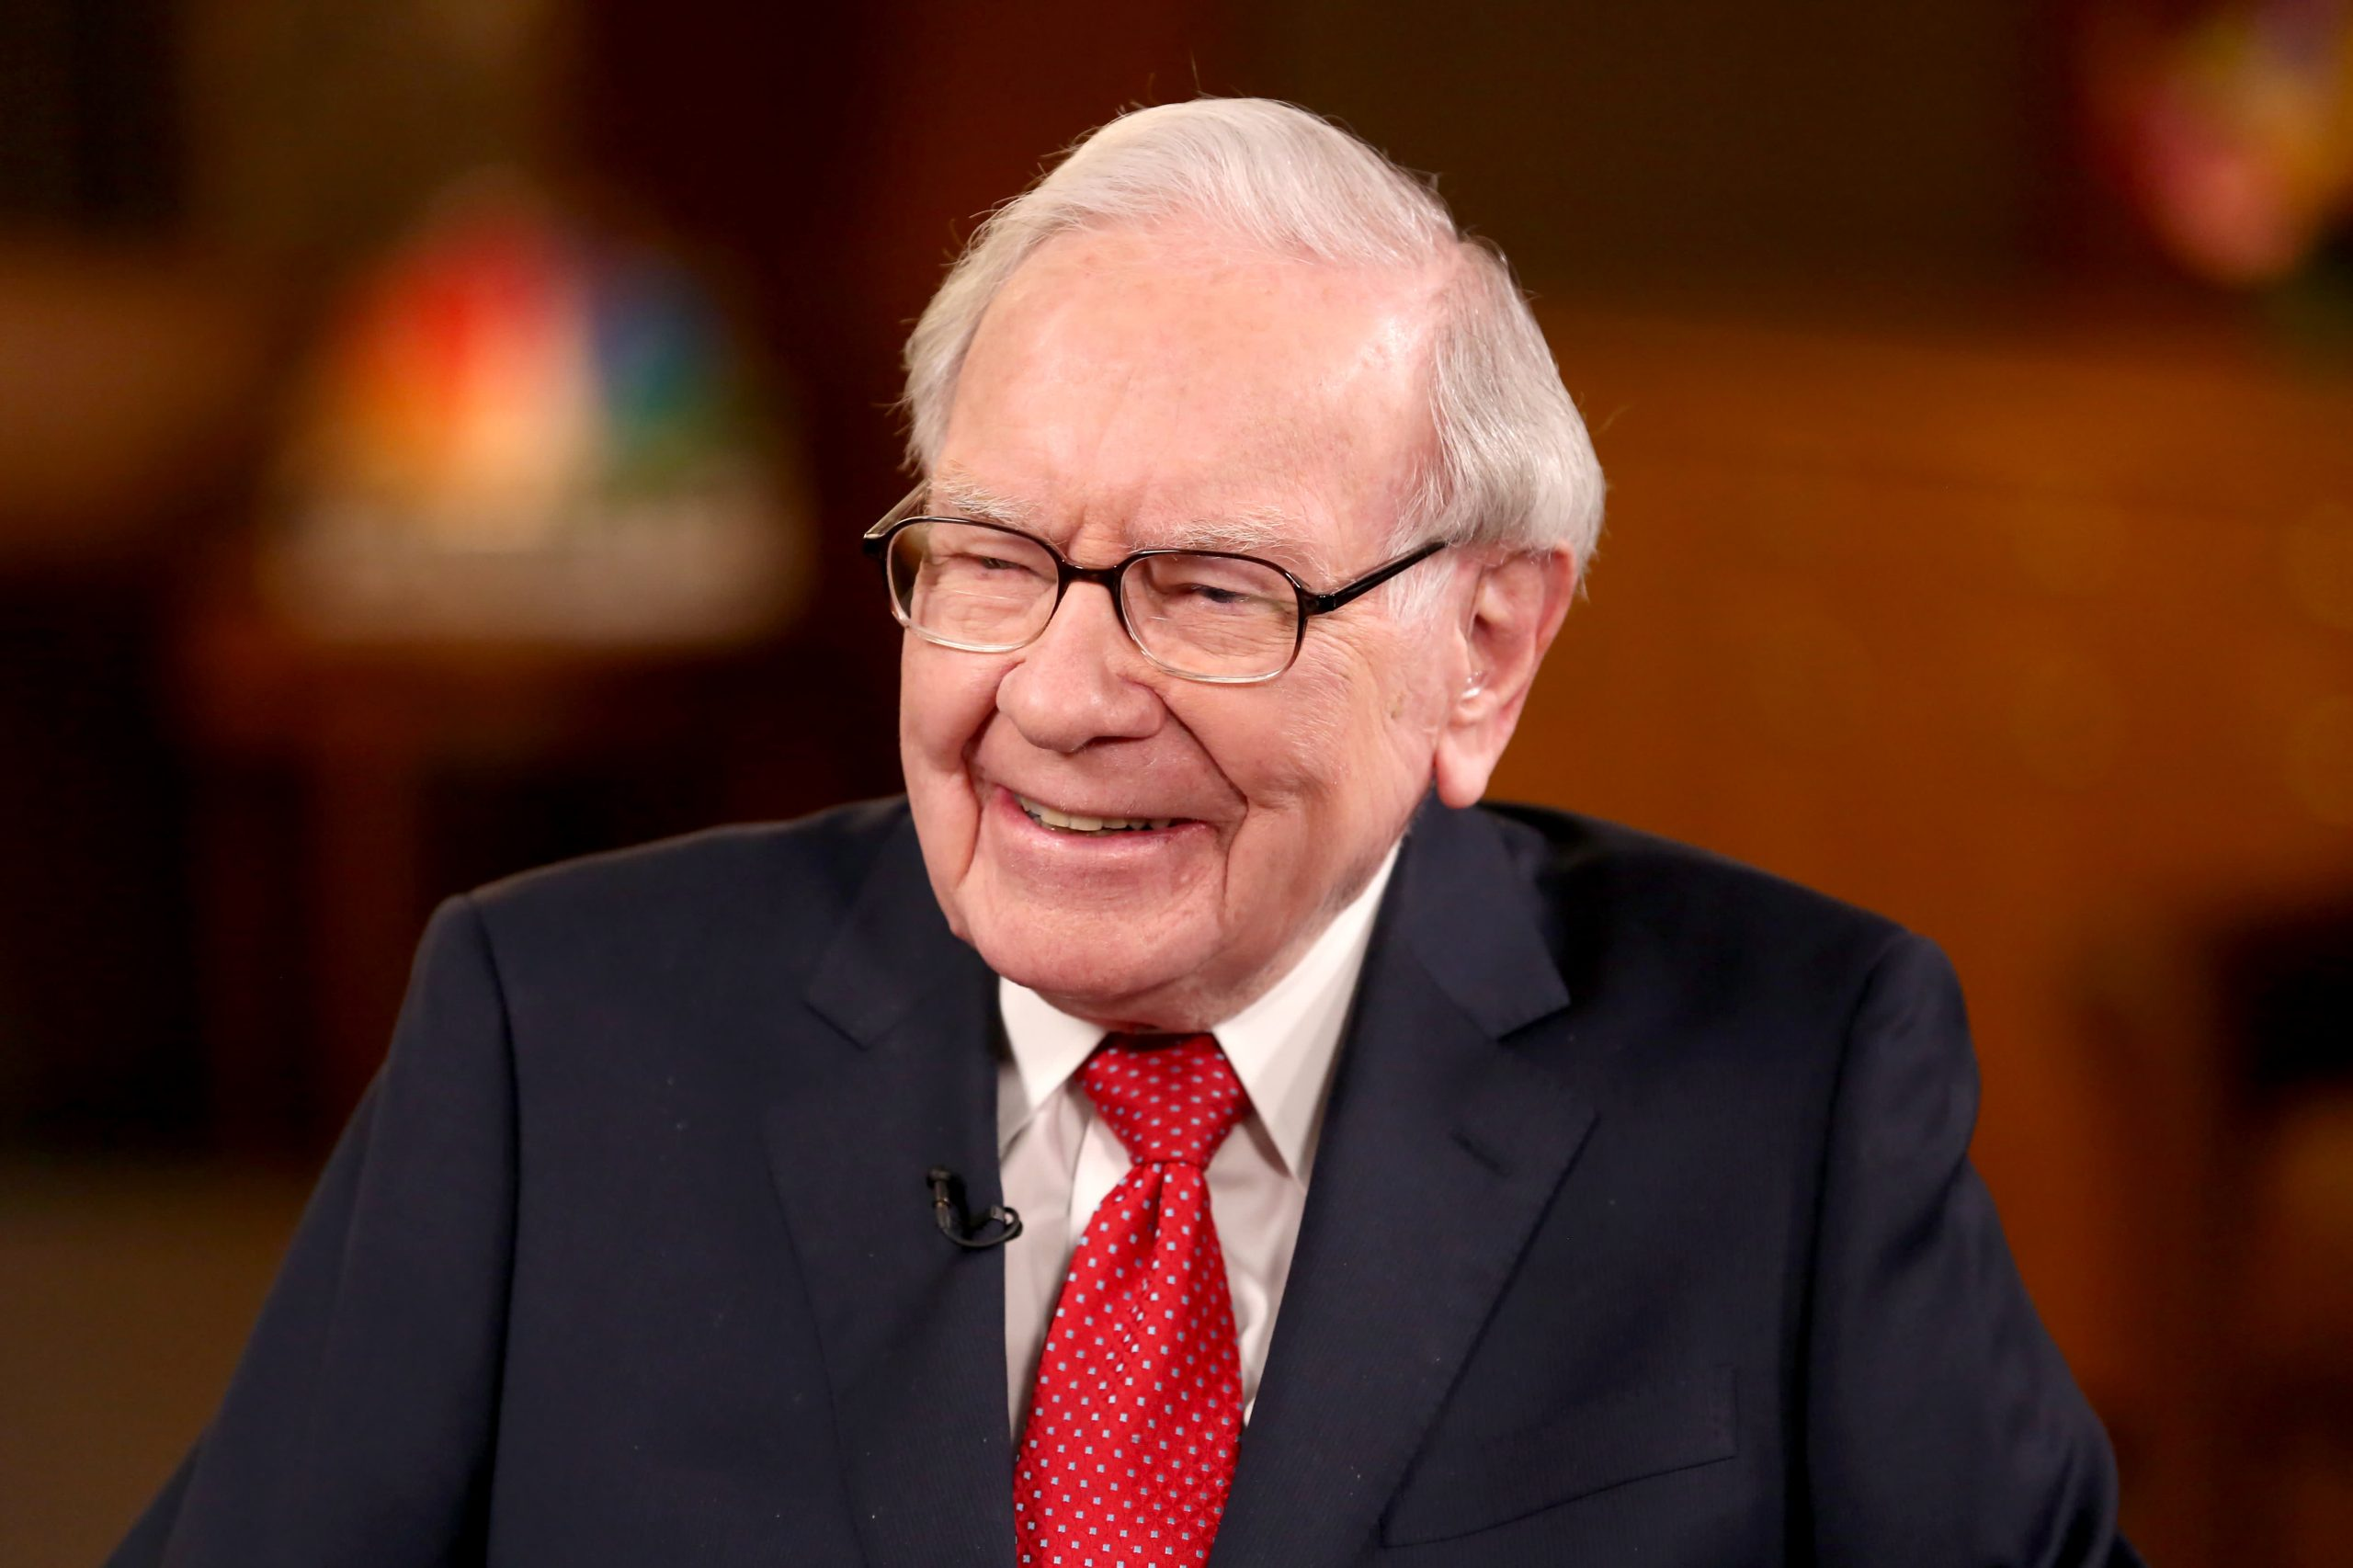 Berkshire Hathaway's operating earnings jump, Buffett continues to buy back stock